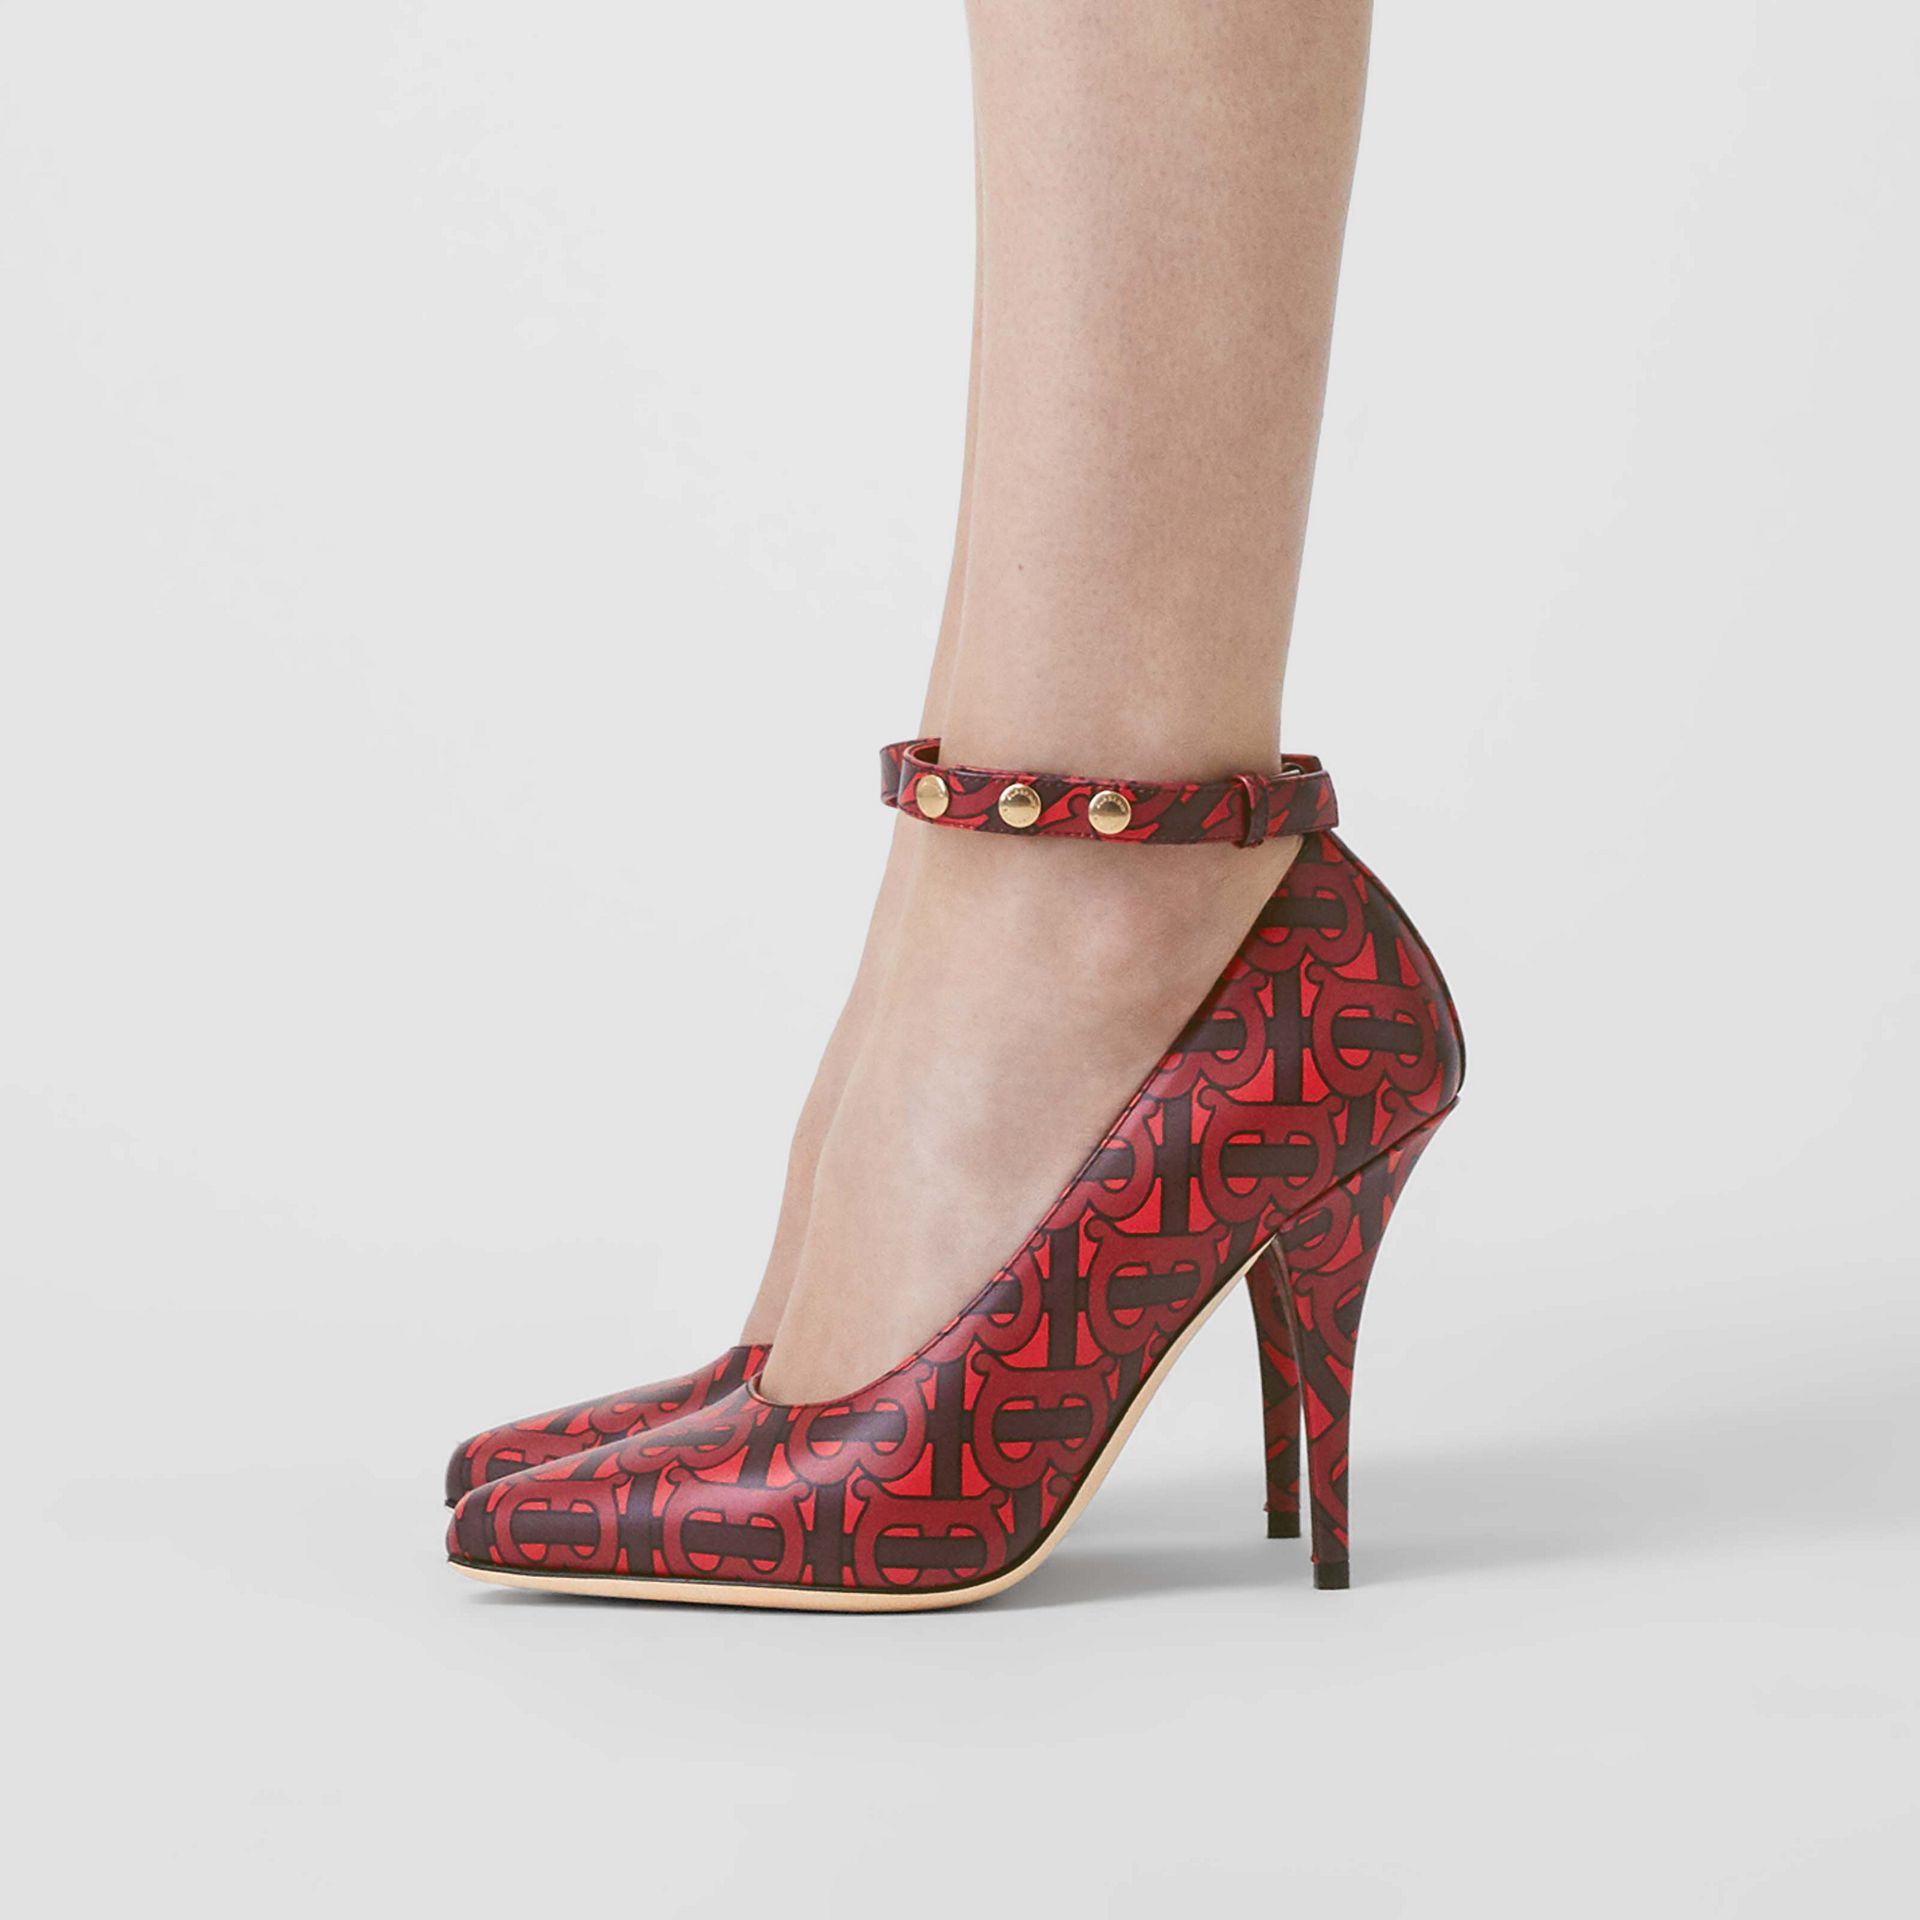 Escarpins à bout pointu en cuir Monogram avec triple pression (Carmin) - Femme | Burberry Canada - photo de la galerie 2